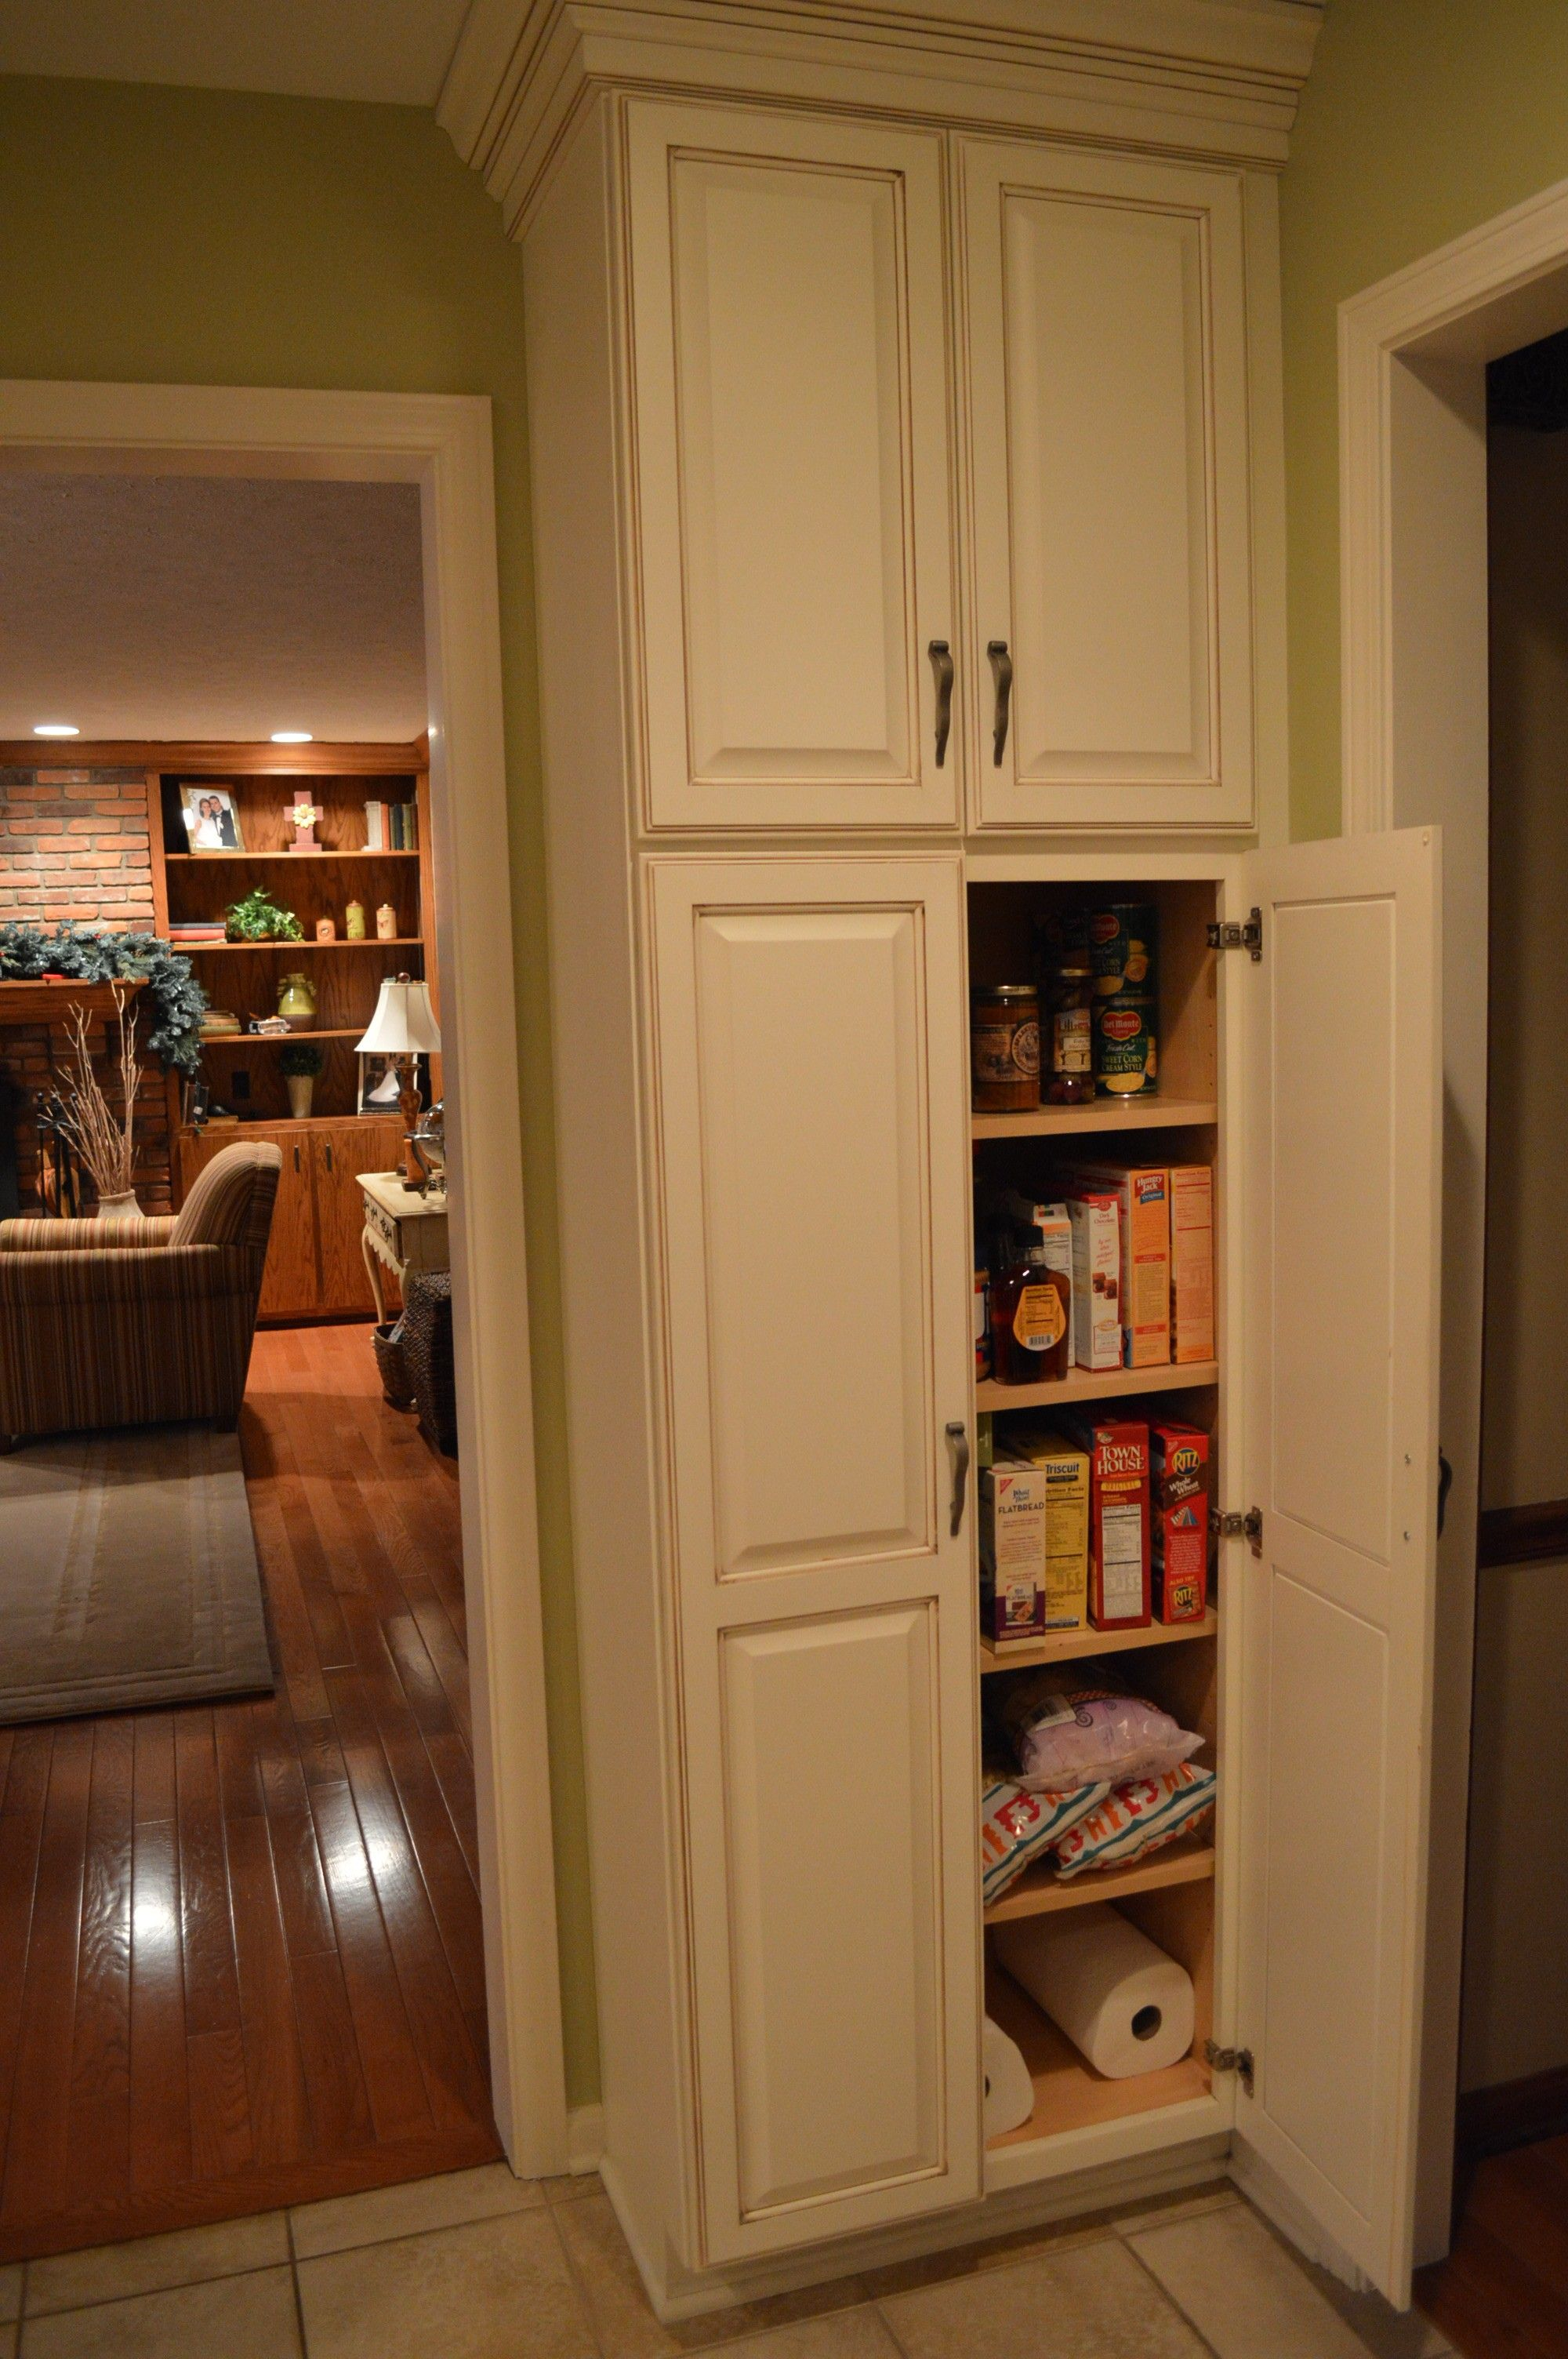 F White Wooden Tall Narrow Pantry Cabinet With Maple Wood ...